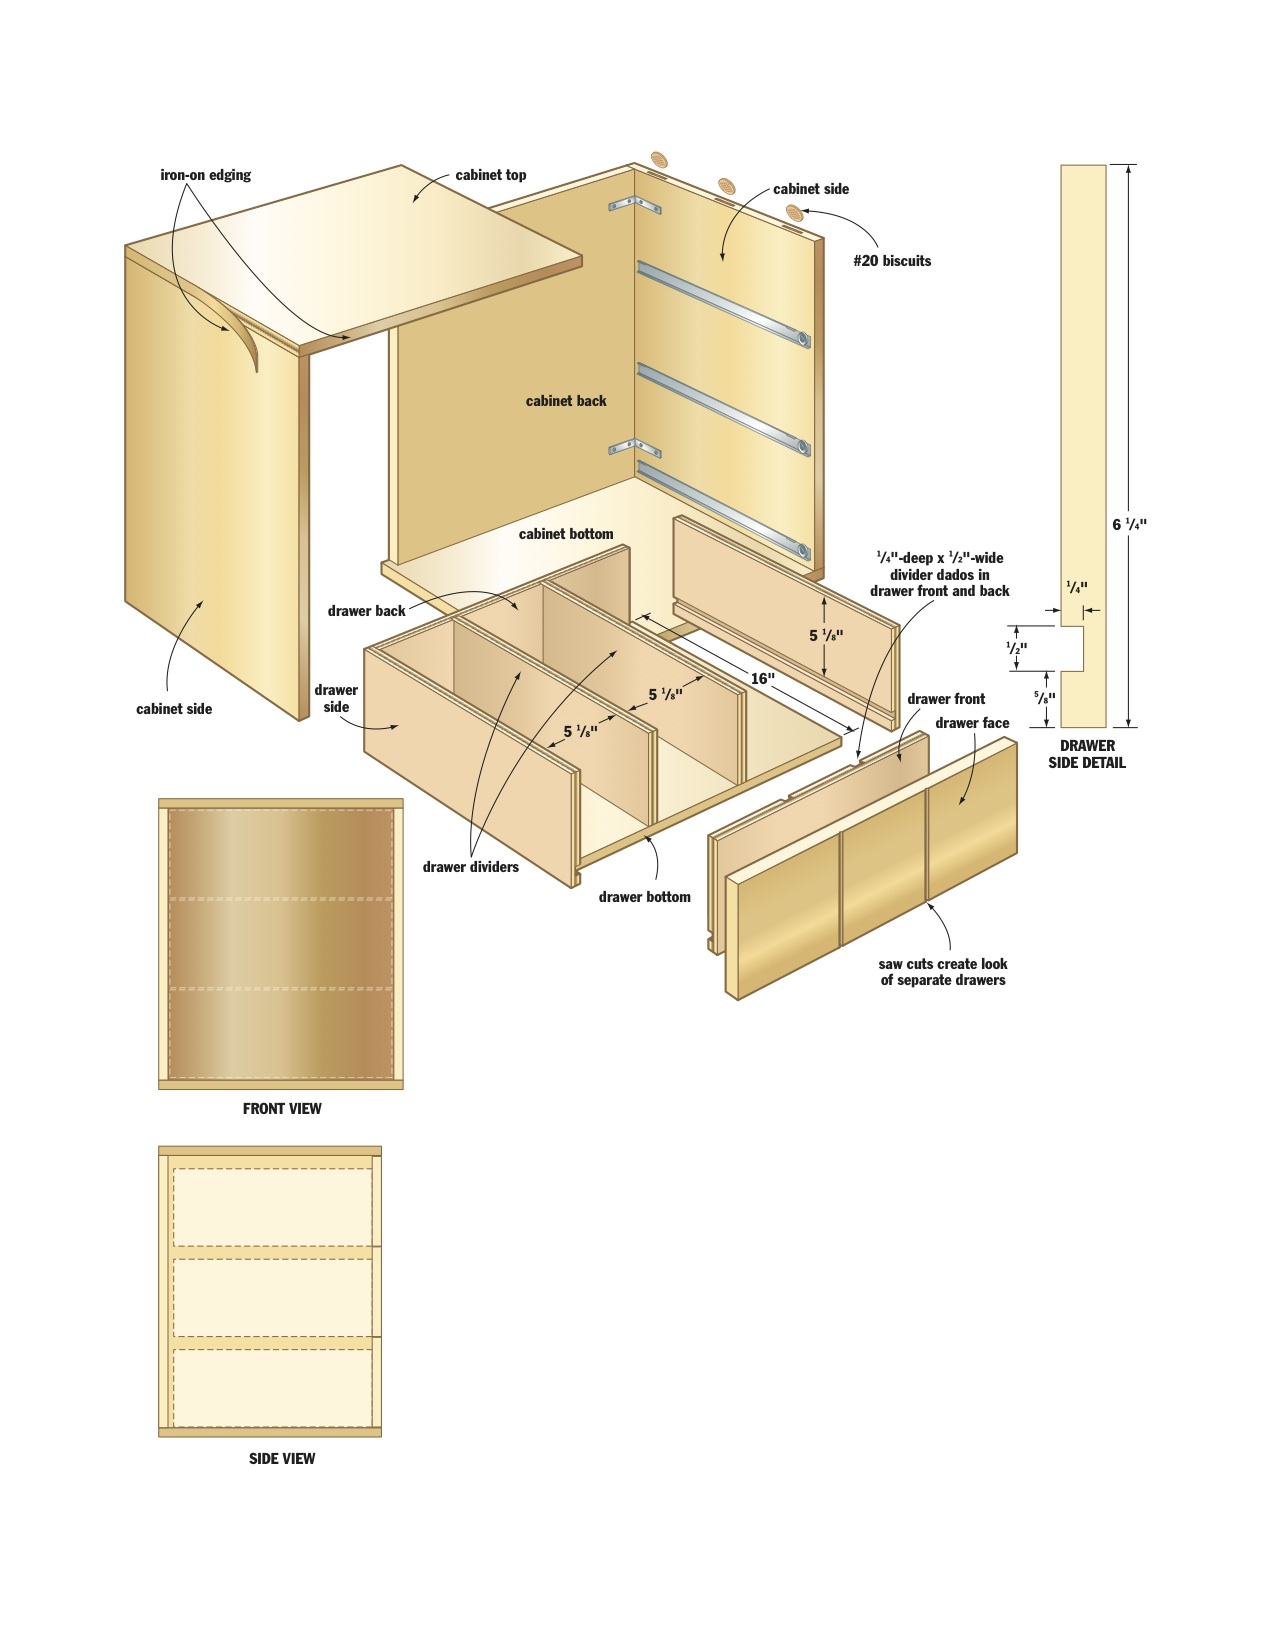 Woodwork plans for cabinet drawers pdf plans Wardrobe cabinet design woodworking plans